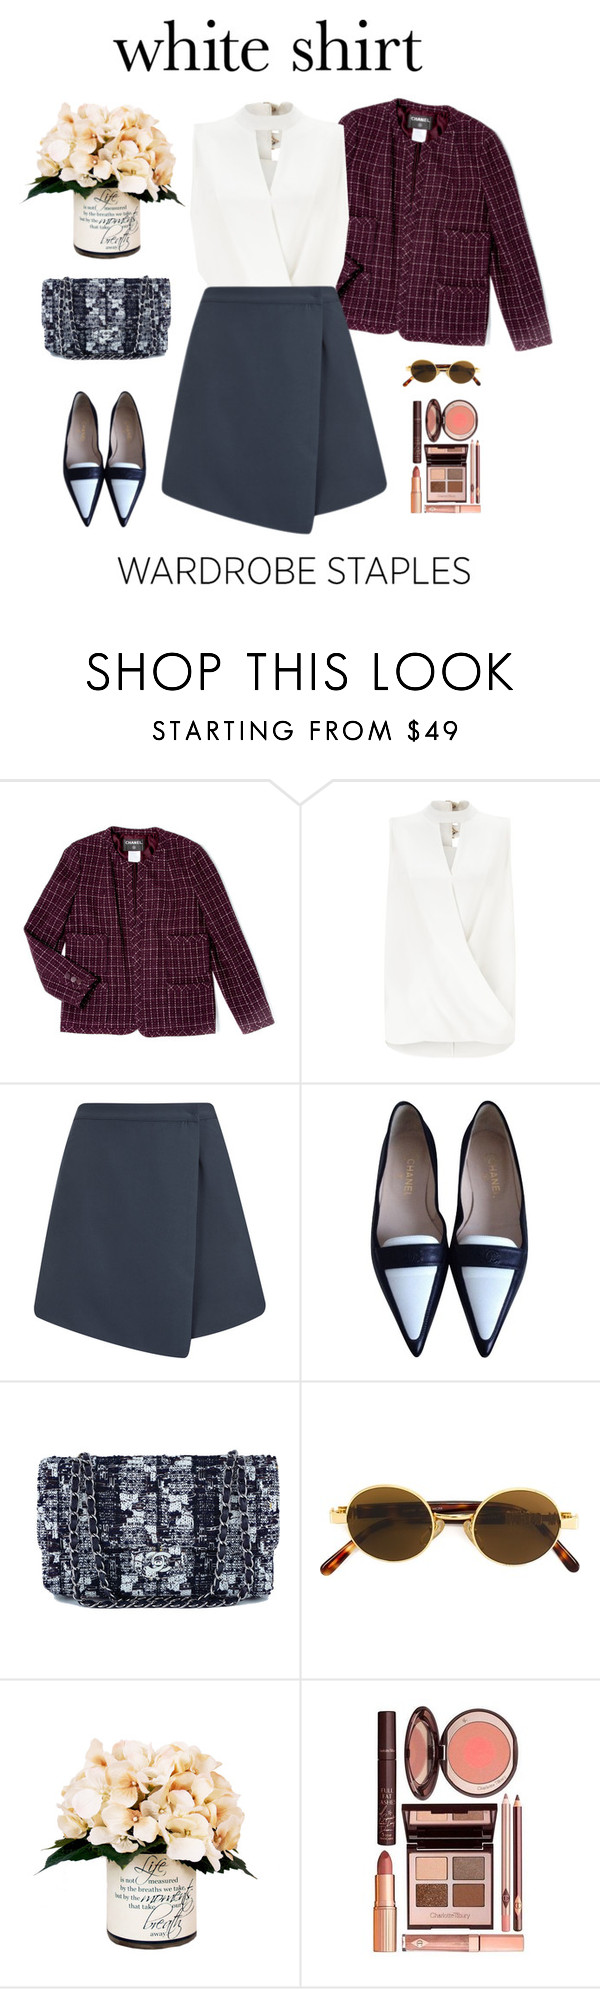 """""""White shirt"""" by yagmur ❤ liked on Polyvore featuring Chanel, Miss Selfridge, The Fifth Label, Moschino, Creative Displays and WardrobeStaples"""